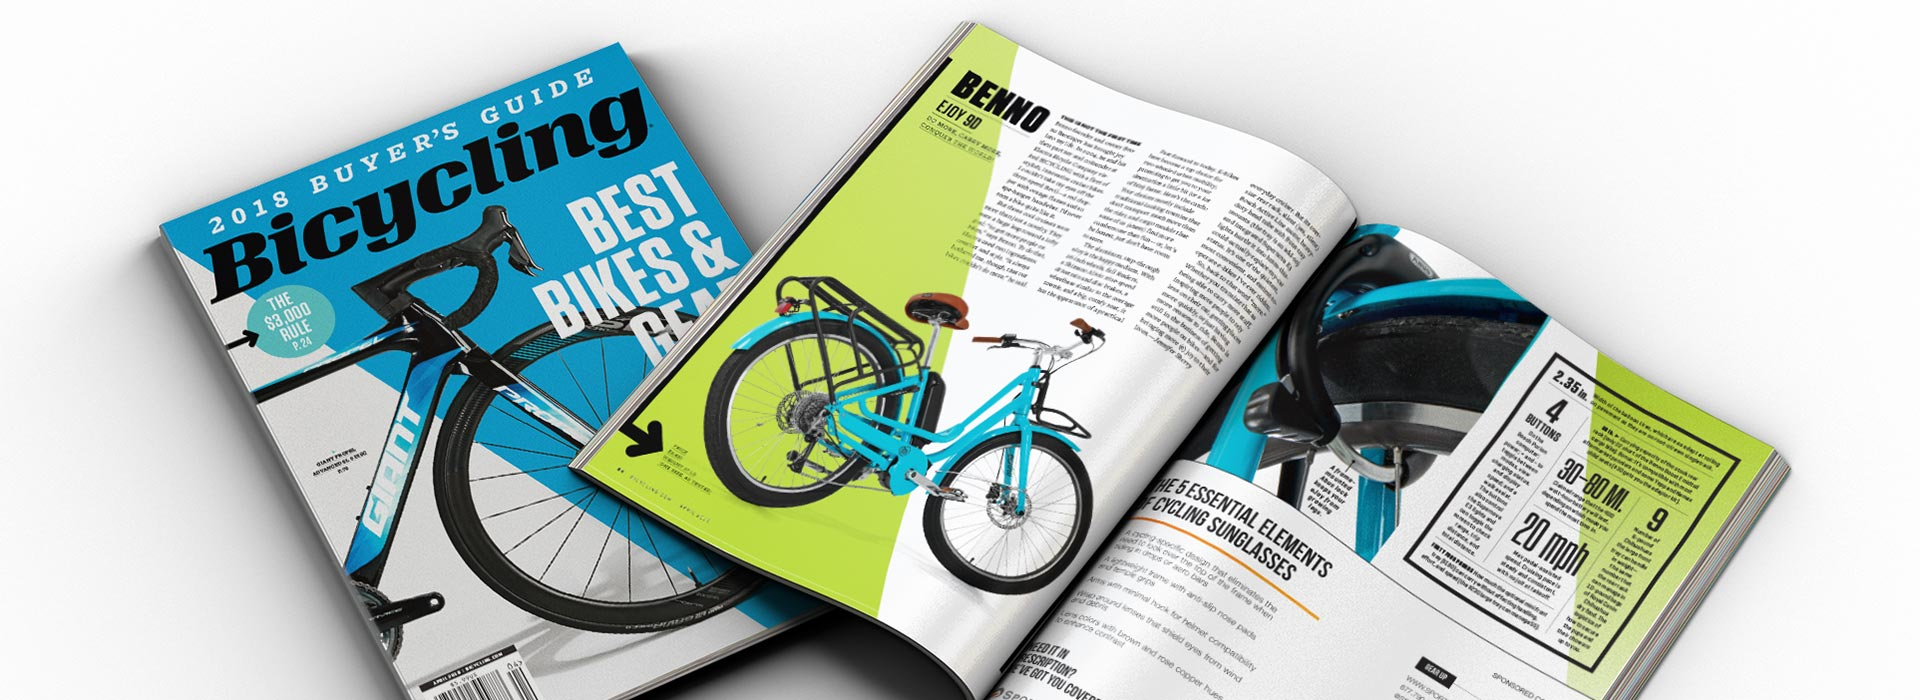 Benno, Bicycling Guide 2018, Electric Bicycles, E-Bikes